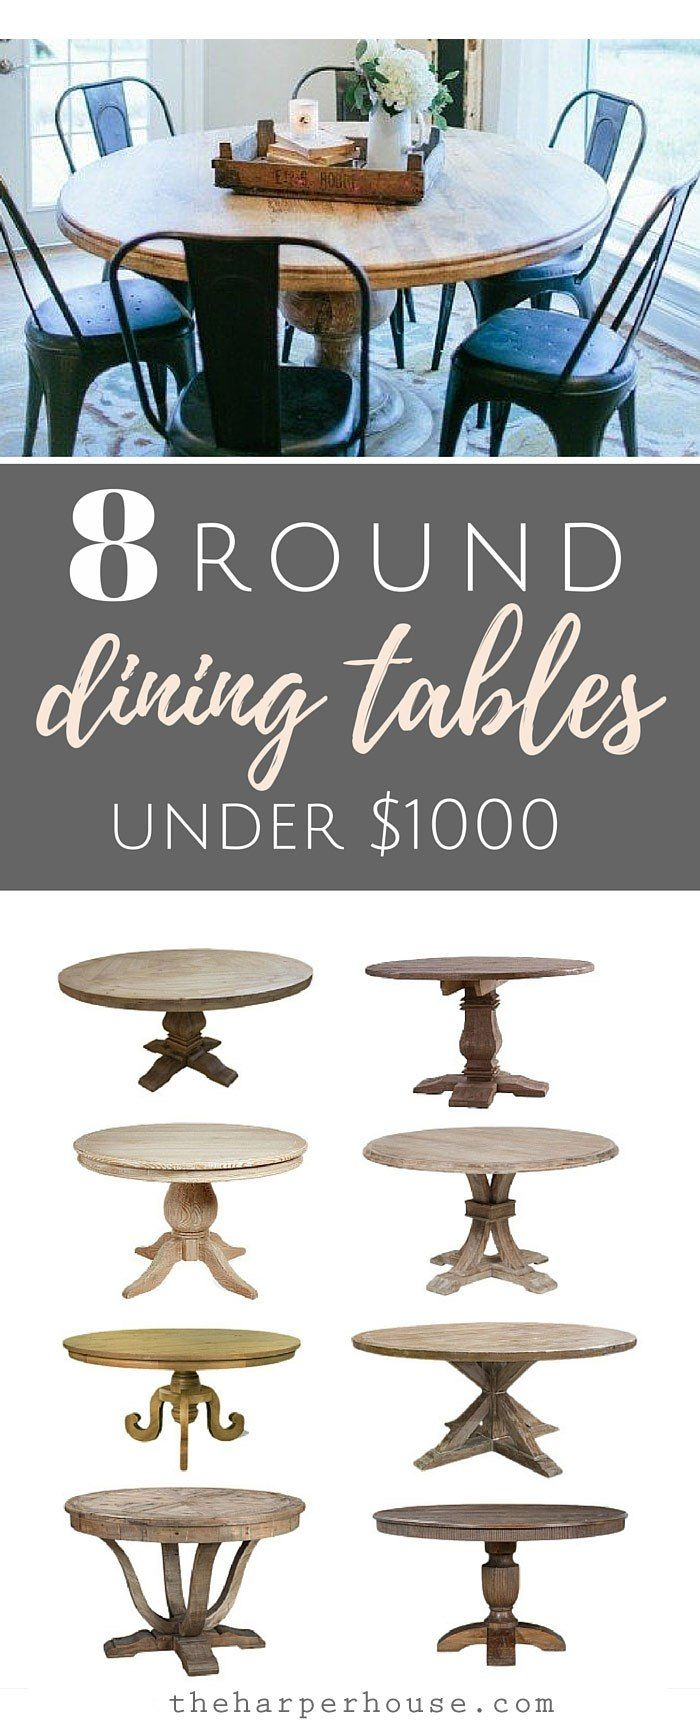 round dining tables kitchen table round Fixer Upper round dining tables and where to find affordable options for under theharperhouse